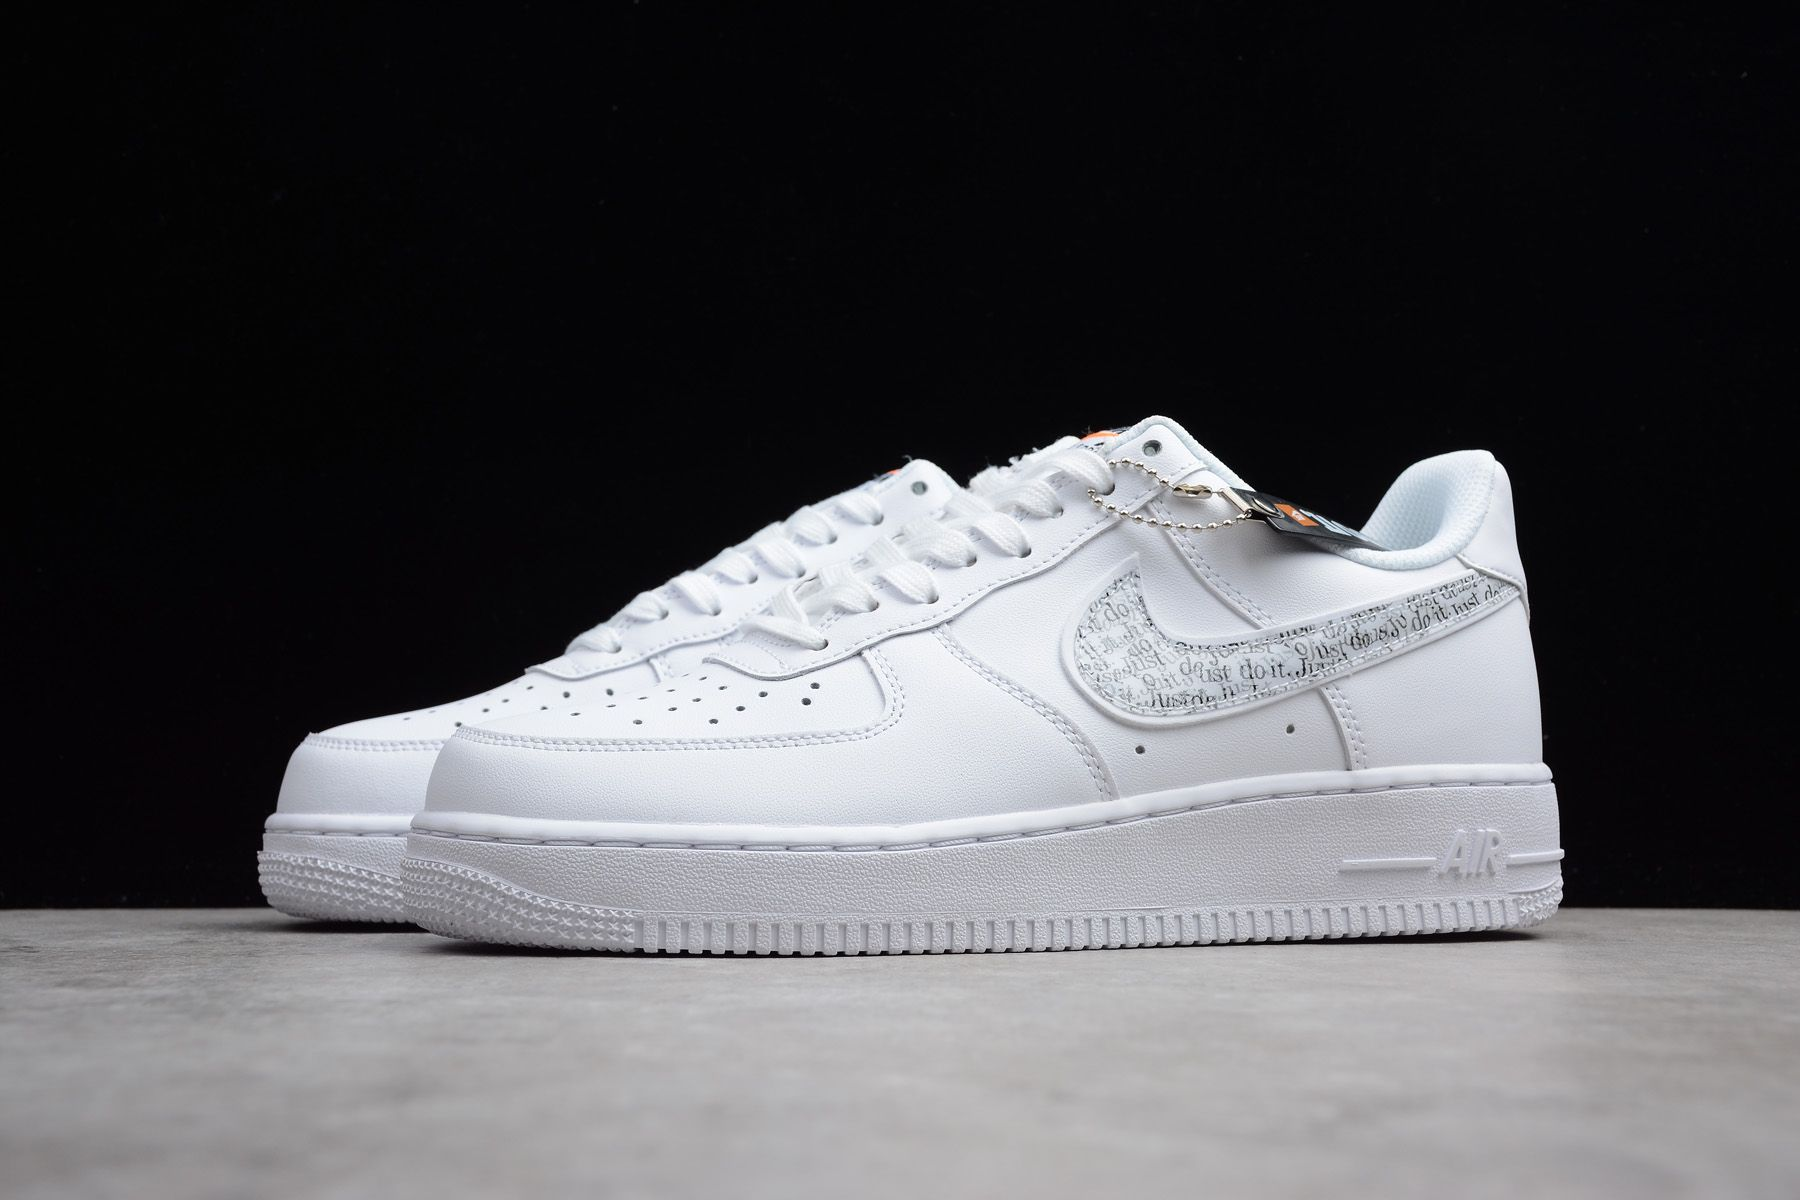 Manner Nike Air Force 1 LV8 White Just Do it BQ5361 100